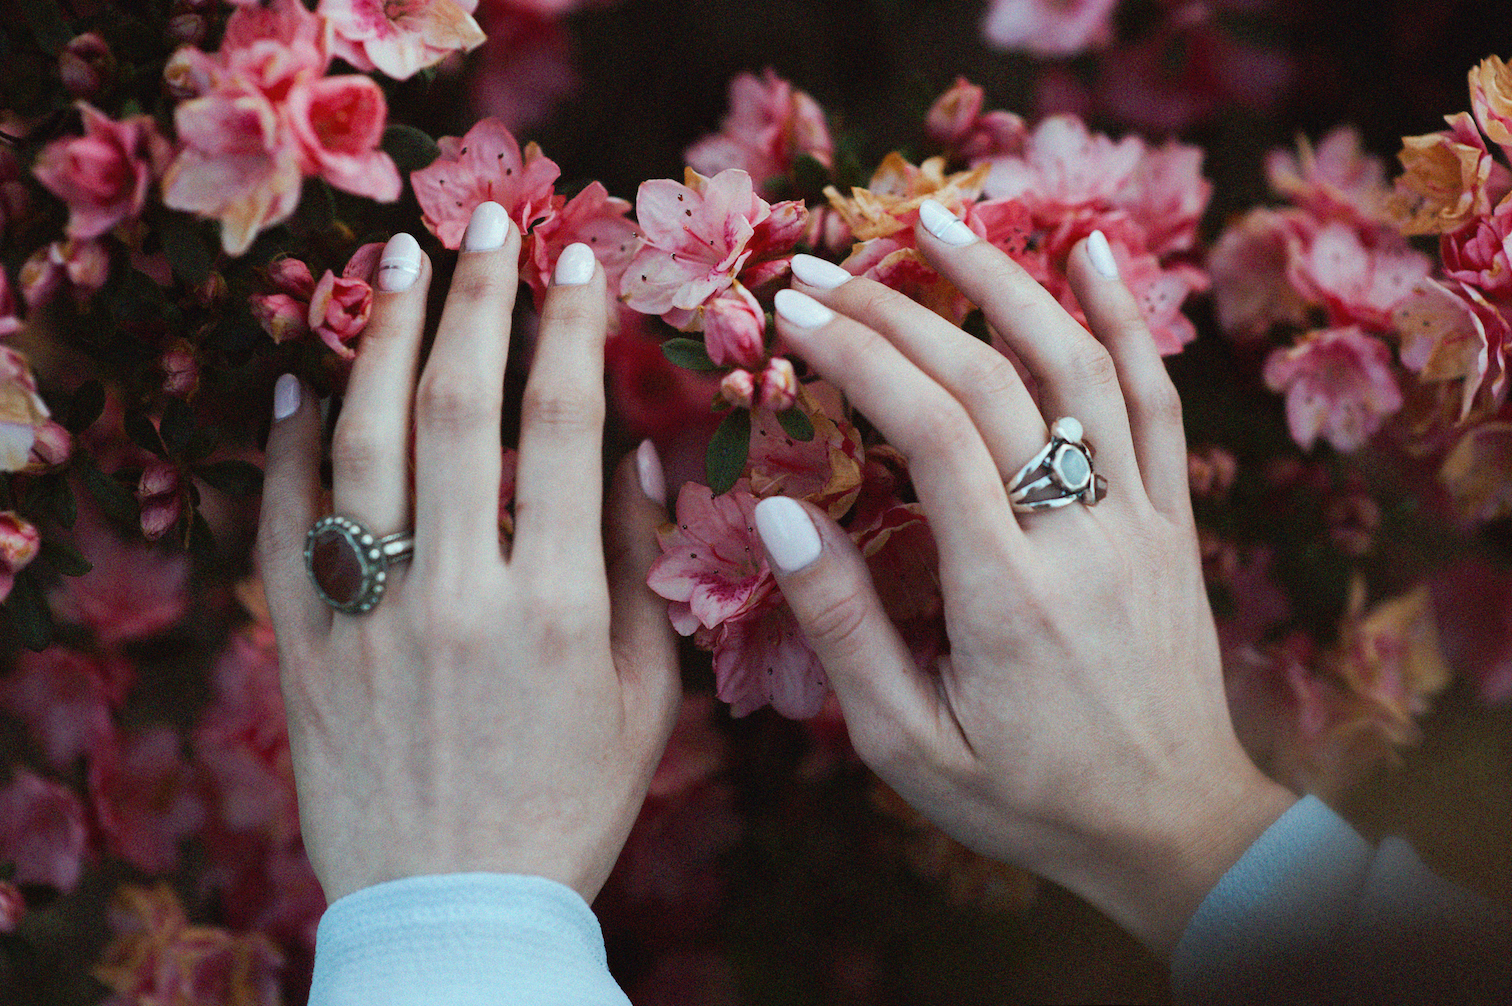 woman's hands on pink flowers showing off white manicure and diamond rings